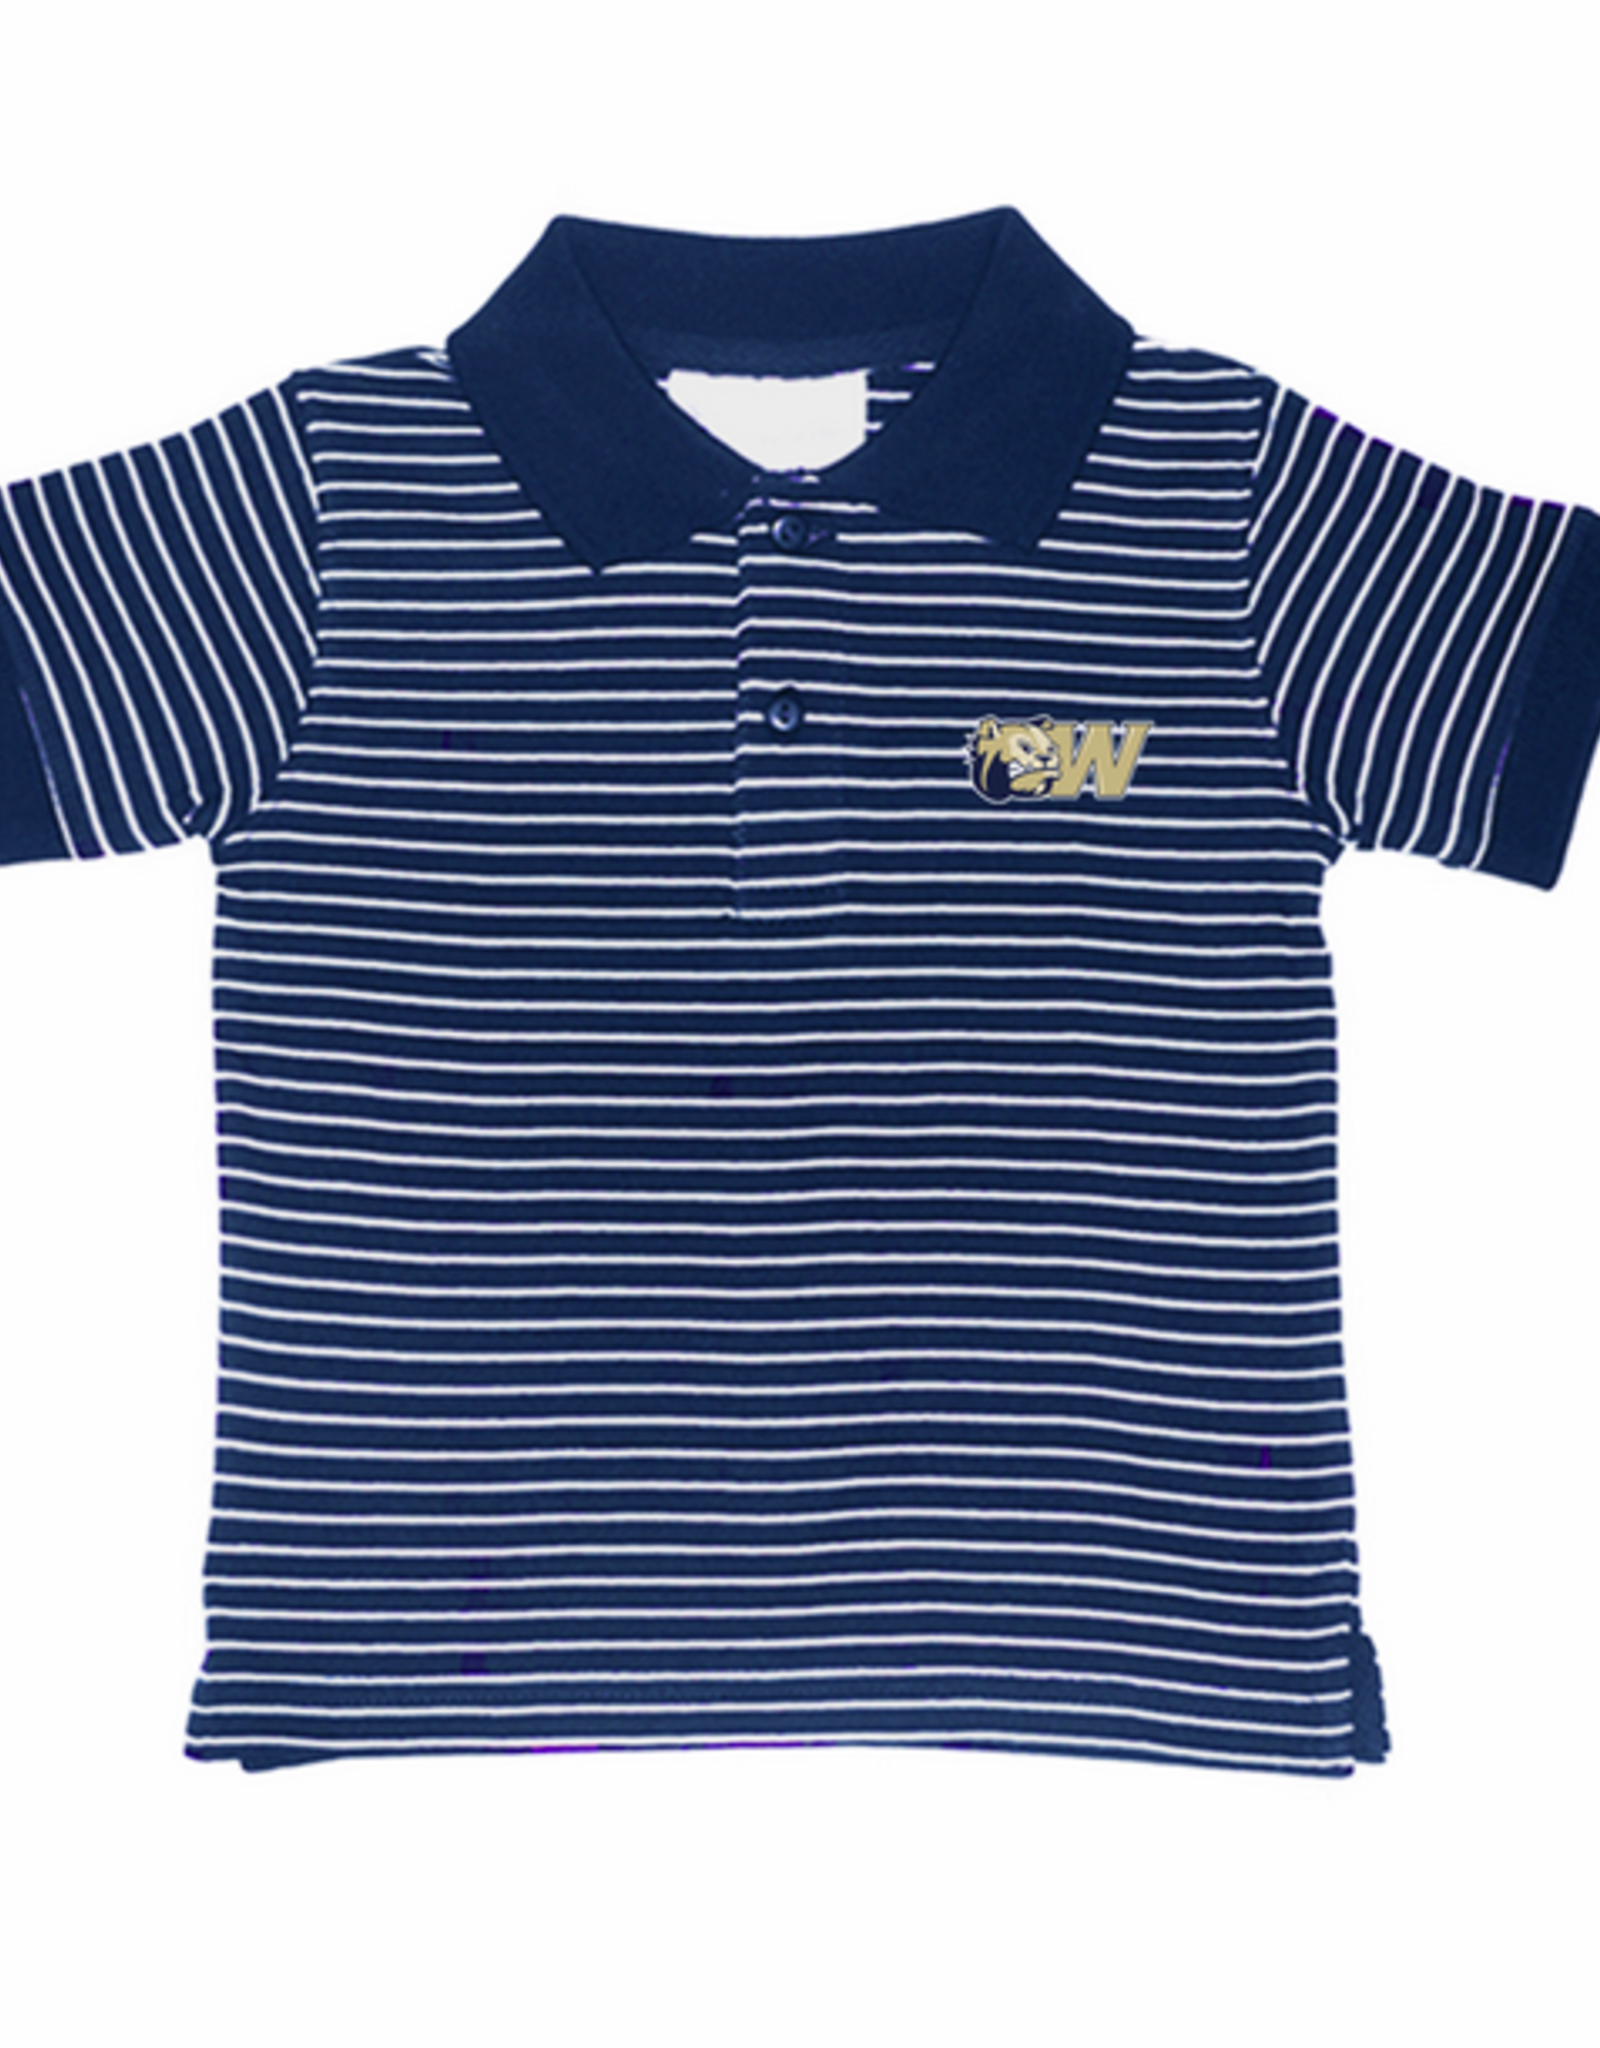 Toddler Striped Jersey Golf Shirt